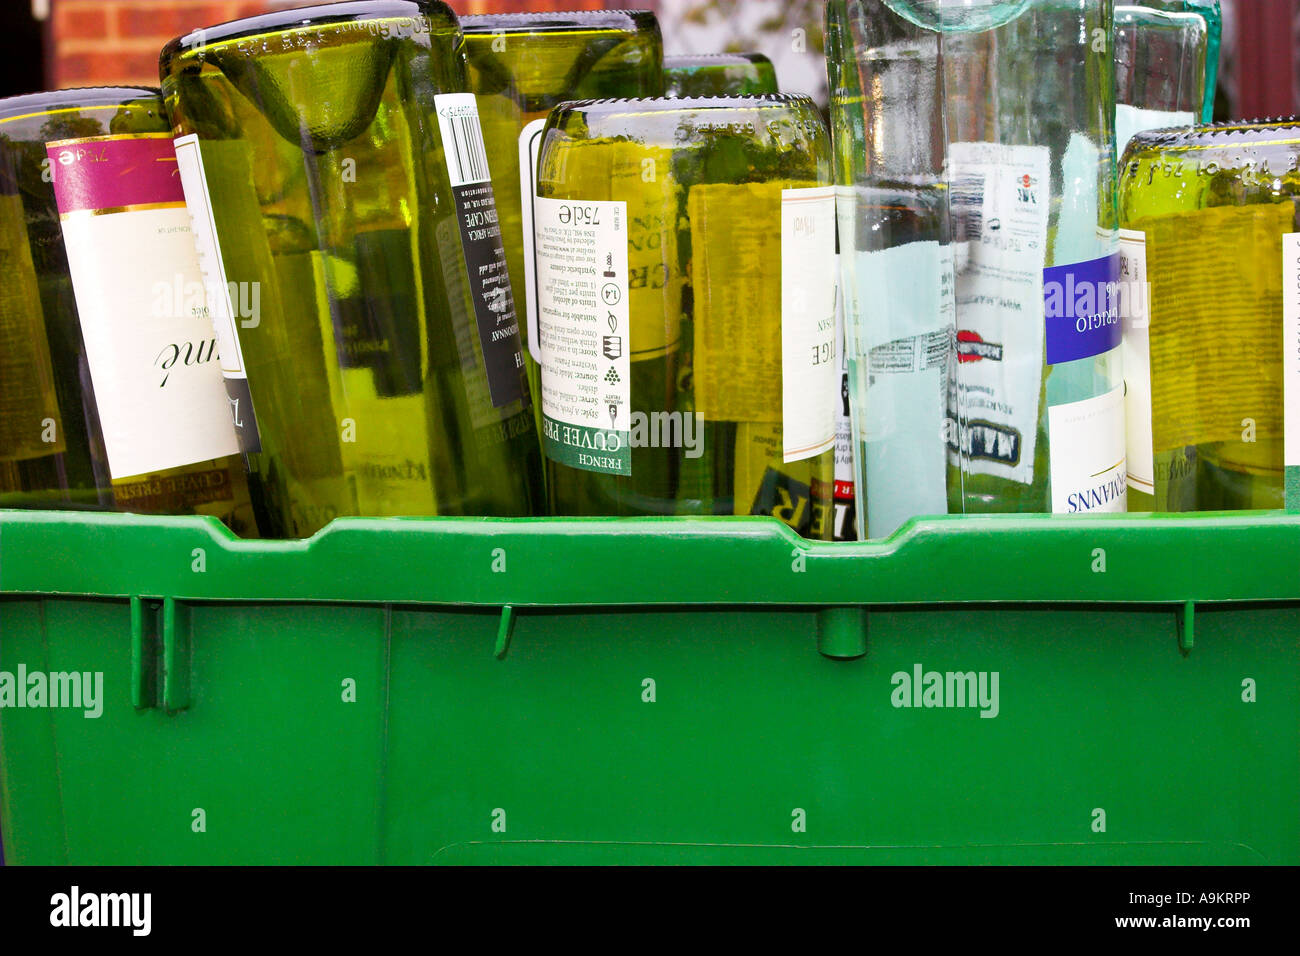 Empty wine bottles ready for collection and delivery to a bottle bank for recycling - Stock Image